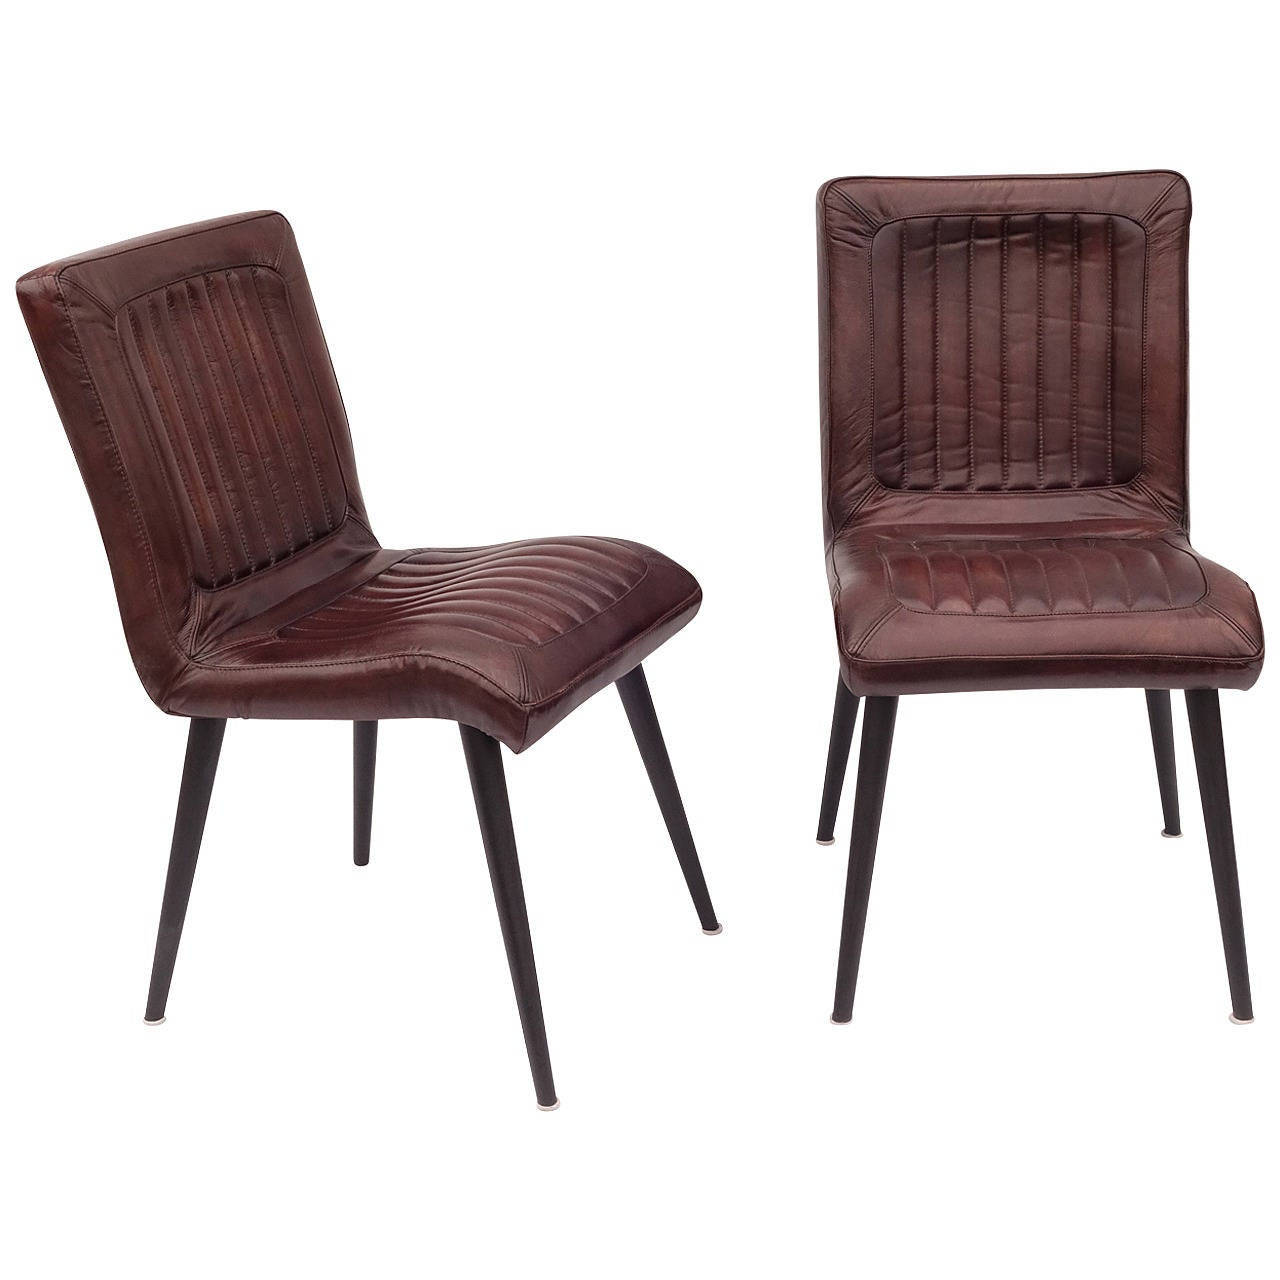 Used upholstered chairs for sale inspirational for Leather dining room chairs for sale